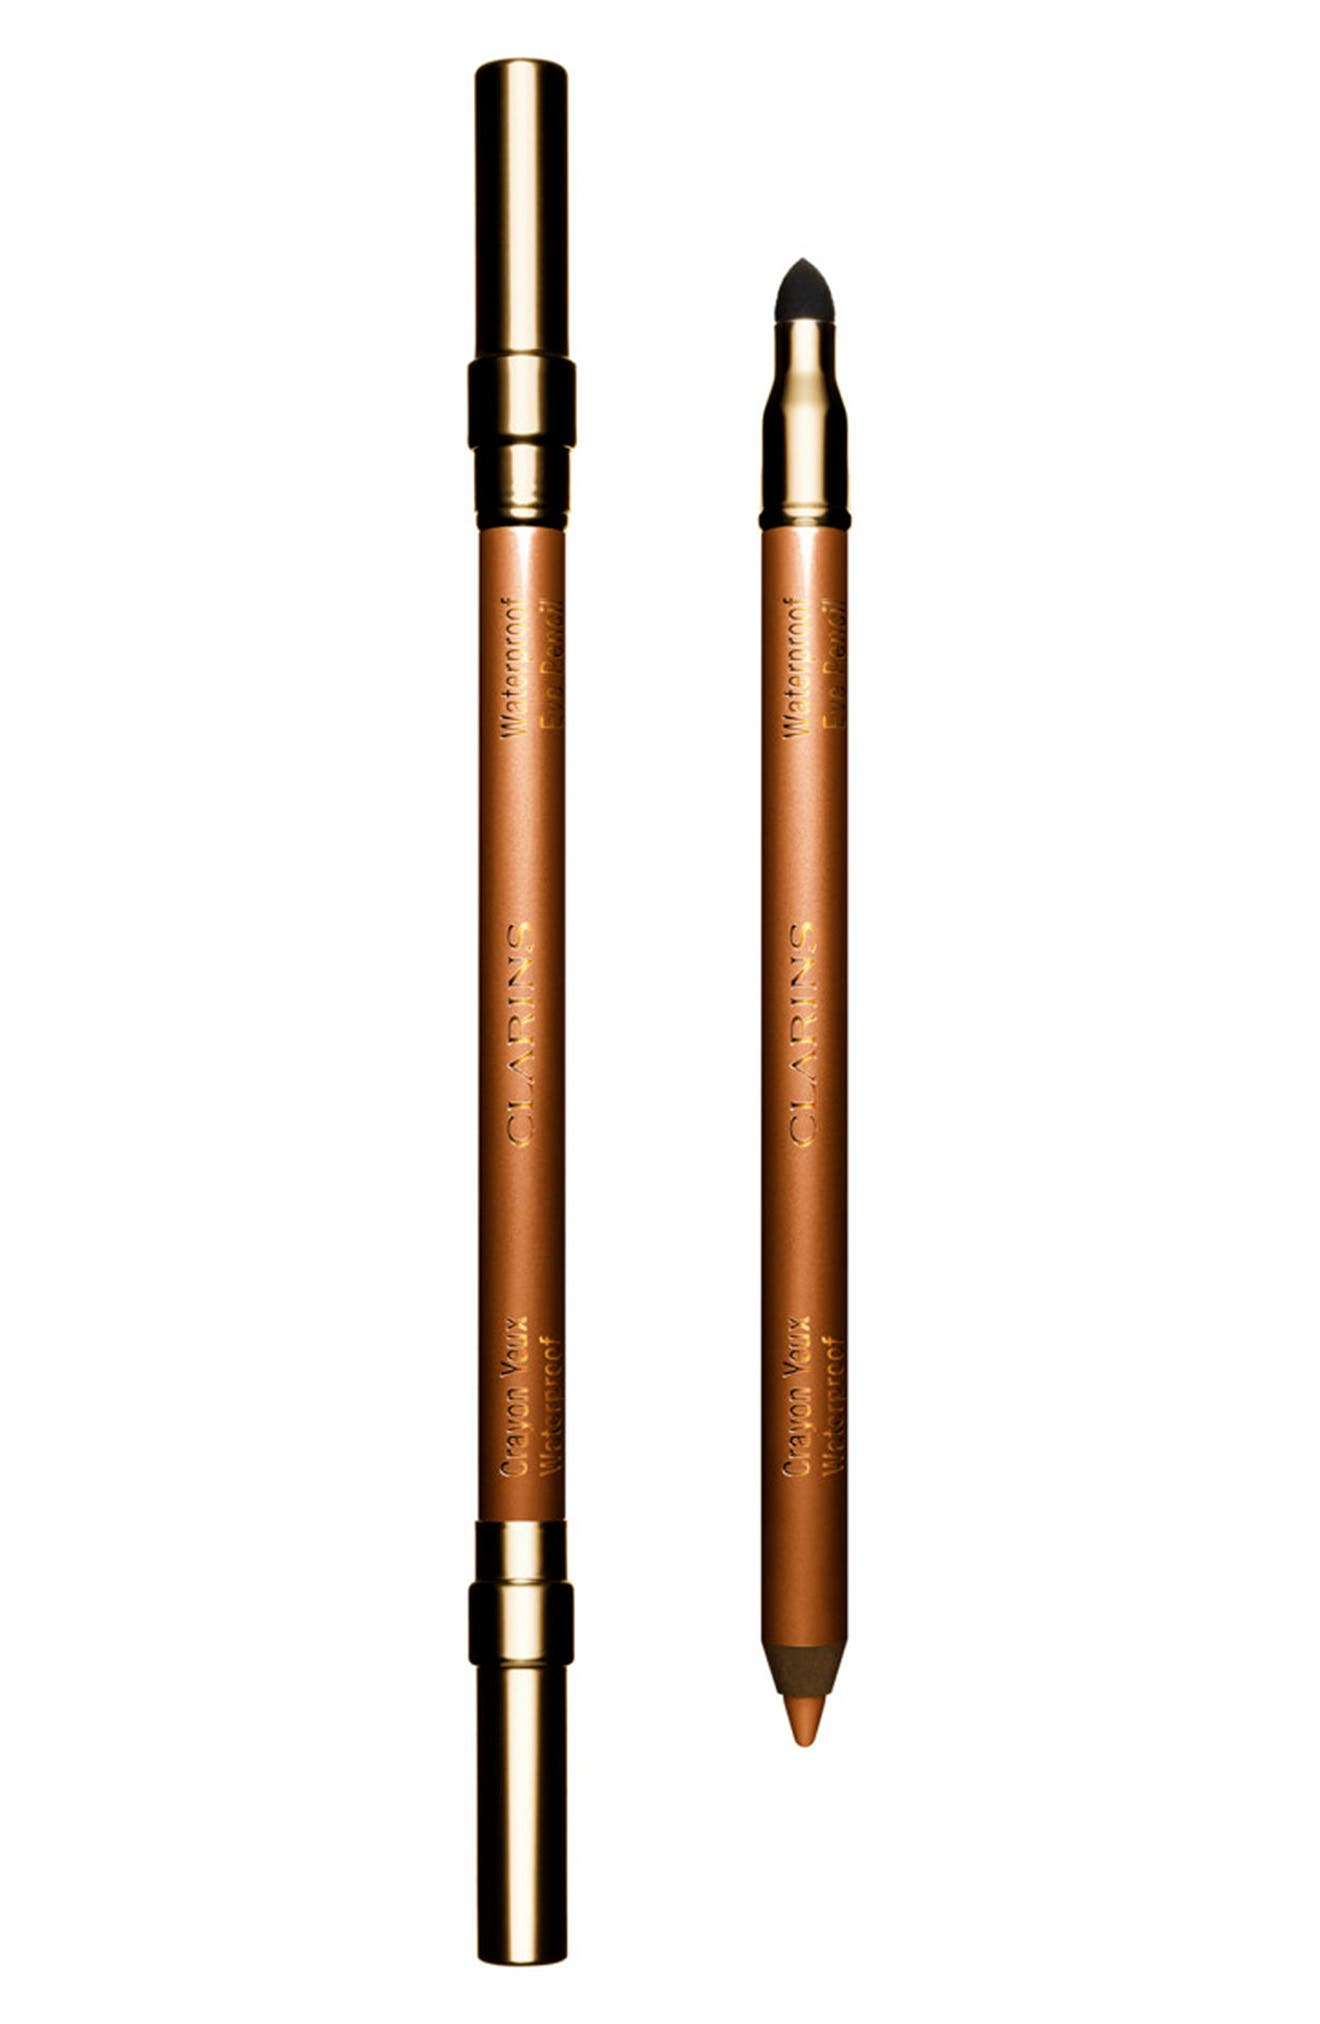 Clarins Waterproof Eye Pencil (Limited Edition)